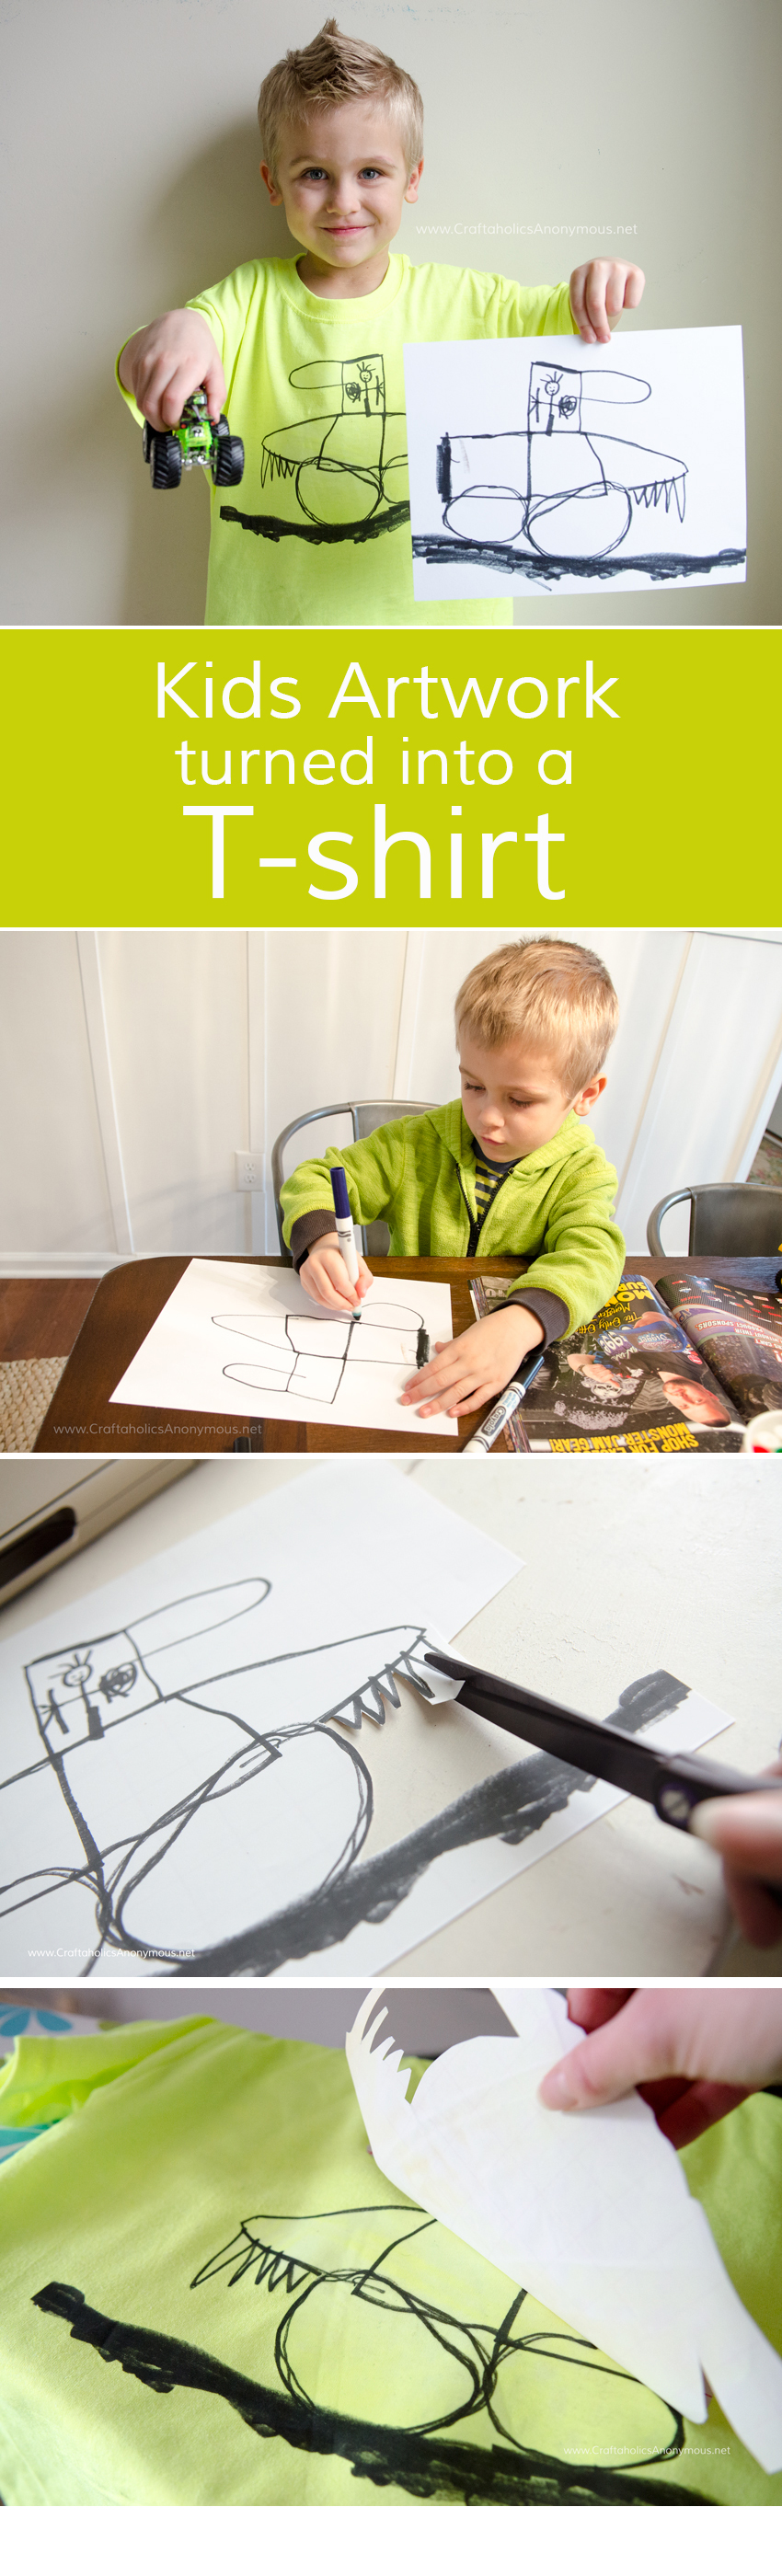 Let kids design their own t-shirt with their artwork! Easy DIY tutorial